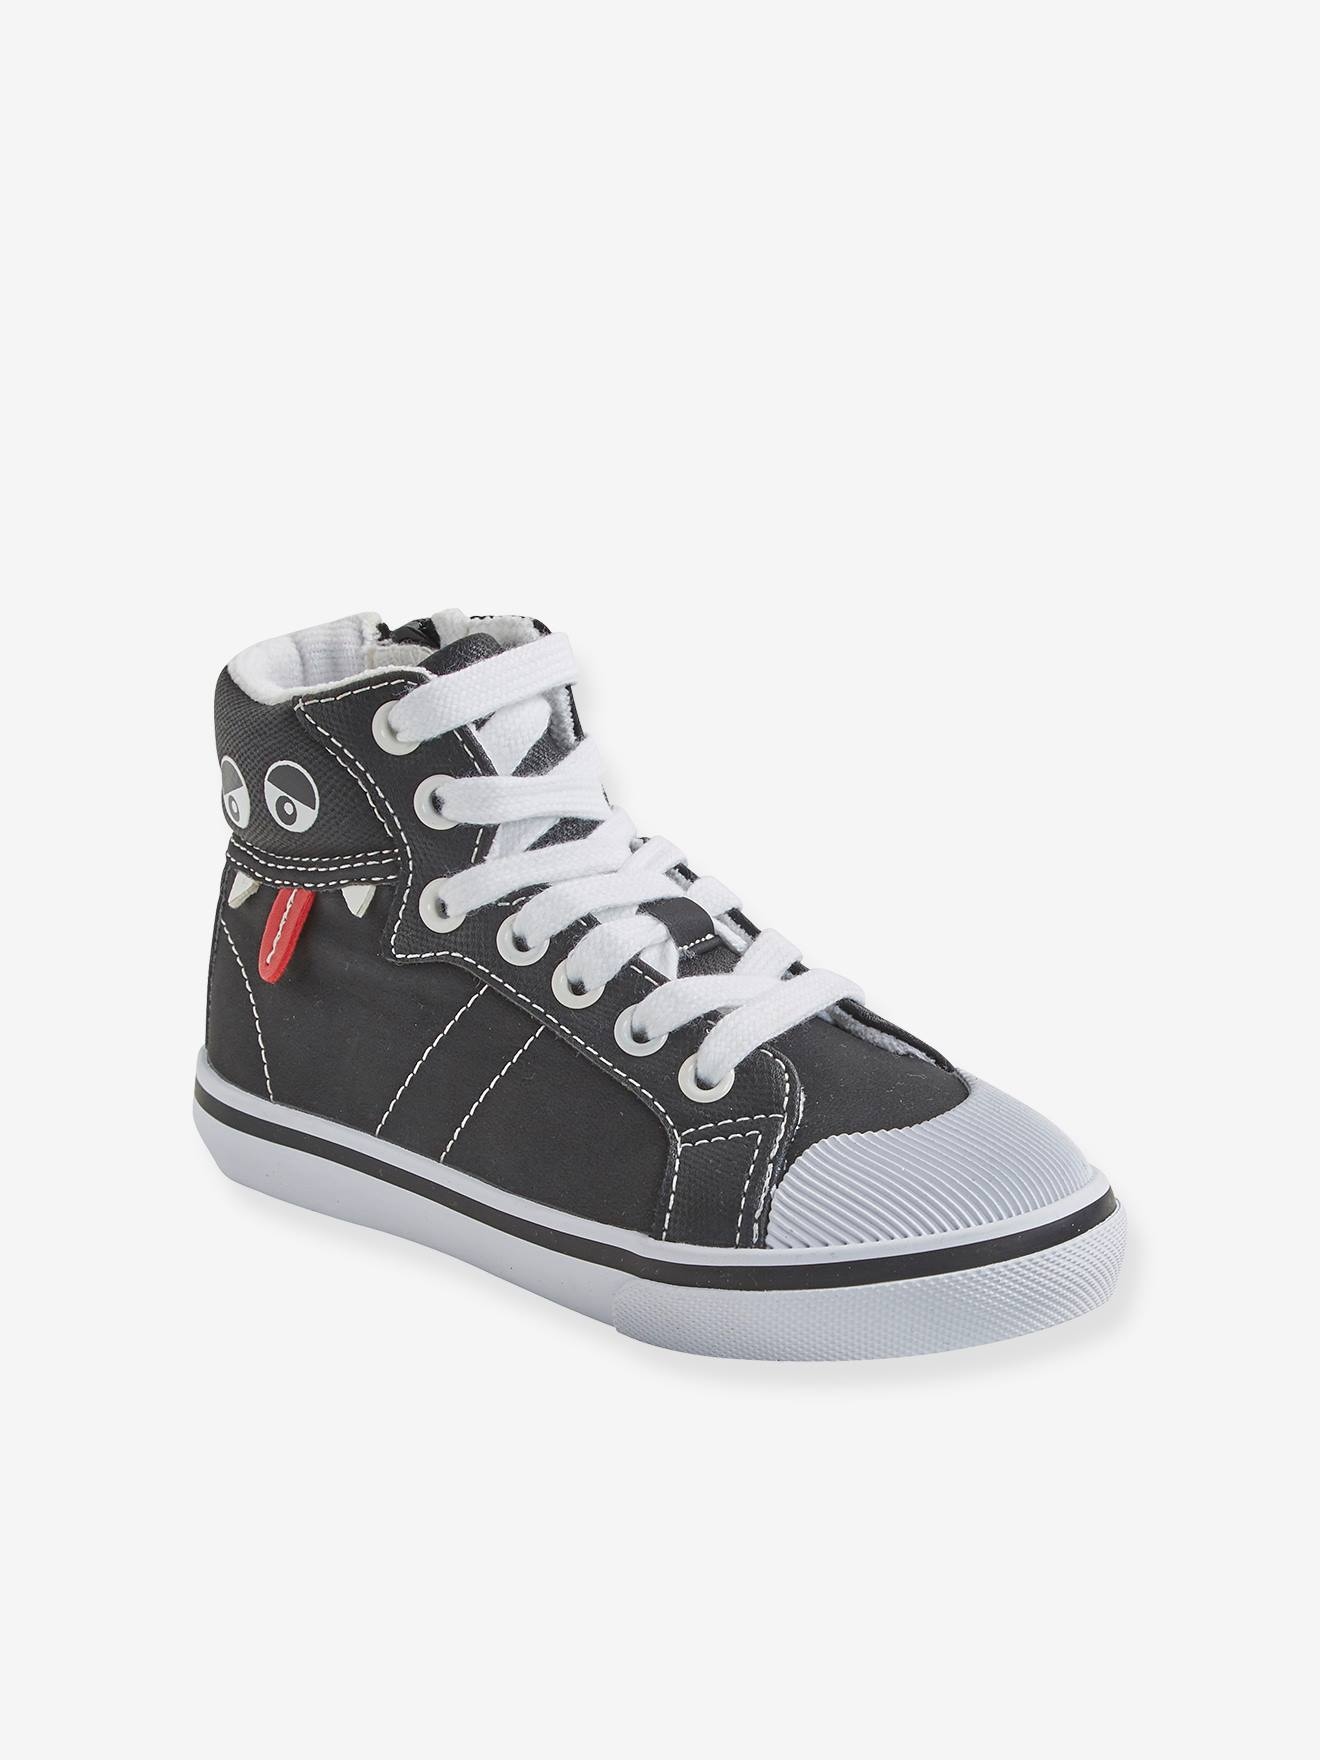 High Top Trainers for Boys, Designed